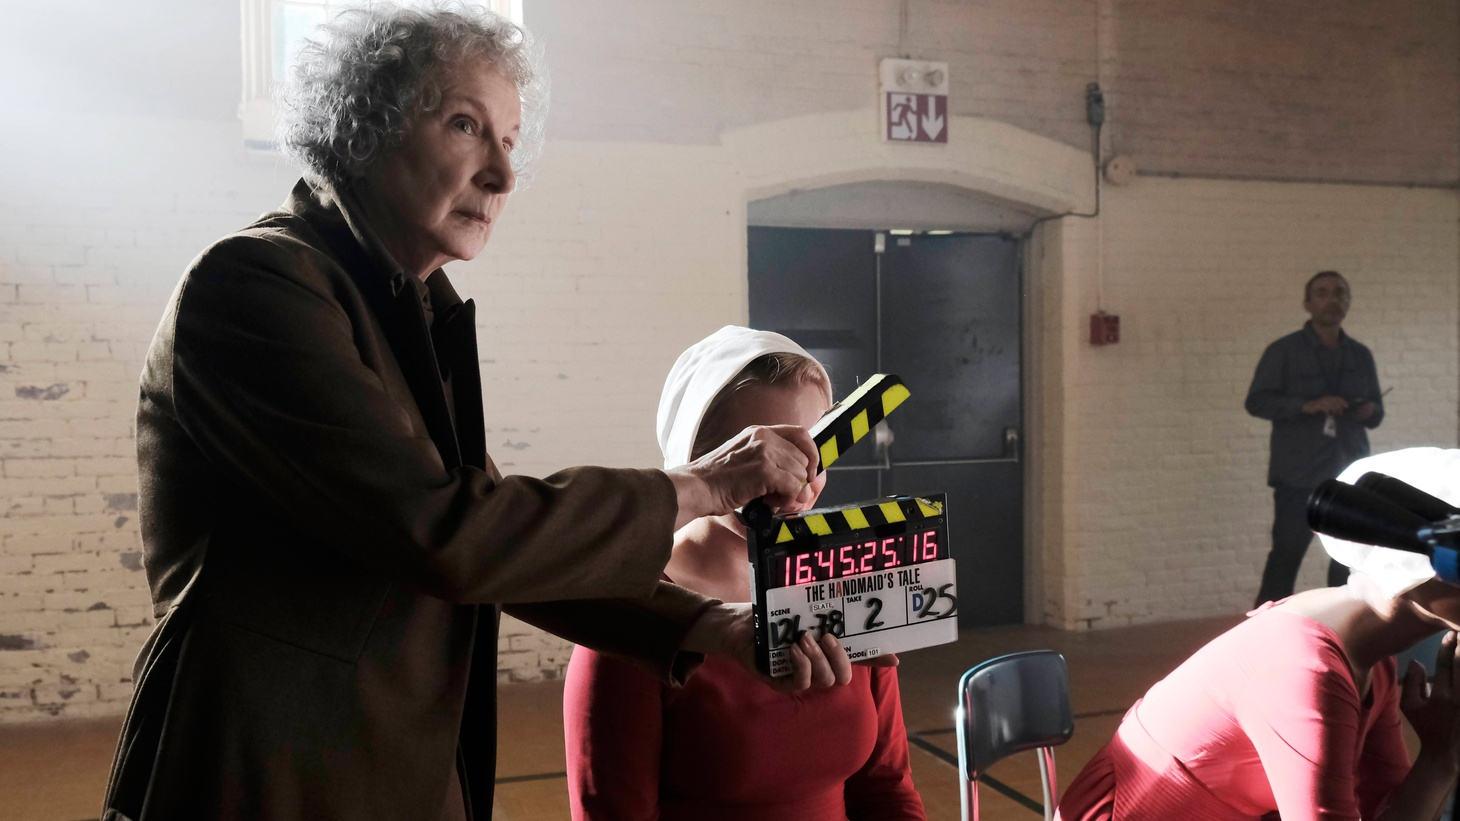 Author Margaret Atwood realizes that Hulu's adaptation of her Dystopian 1985 novel The Handmaid's Tale has gotten a huge PR boost, thanks to a turn of events that hardly seemed possible when work on the series was underway. Atwood and showrunner Bruce Miller talk about adapting the story for television and the eerie timeliness of the new series.